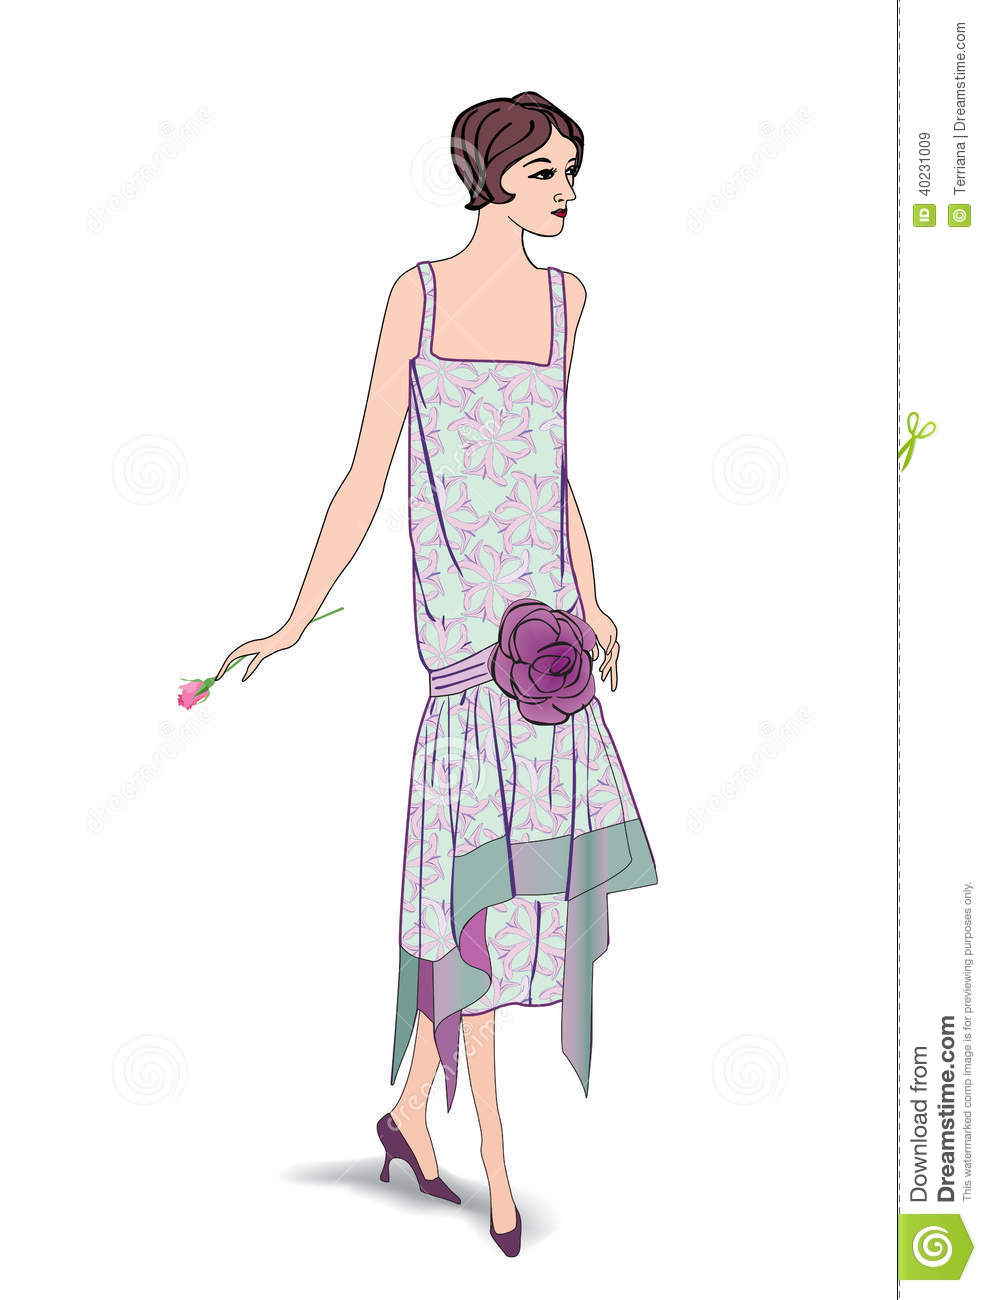 Elle Cartoons Illustrations Vector Stock Images 90 Pictures To Download From